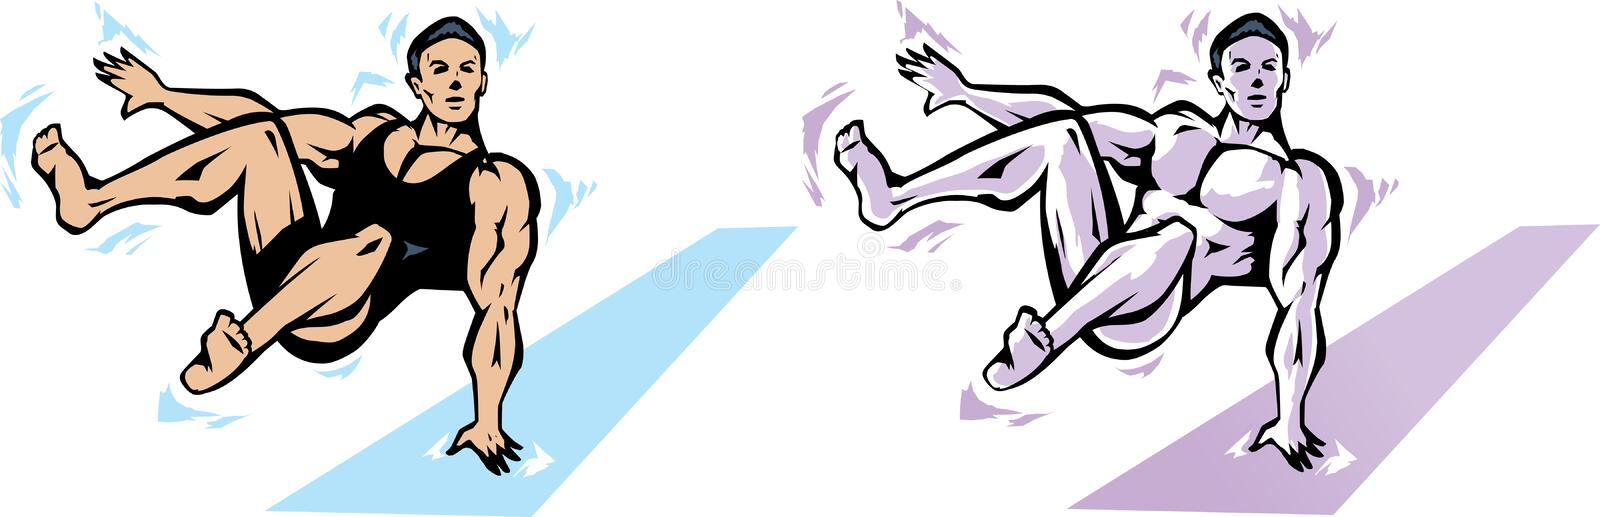 Download Jumping gymnast stock vector. Illustration of dynamic - 17138210